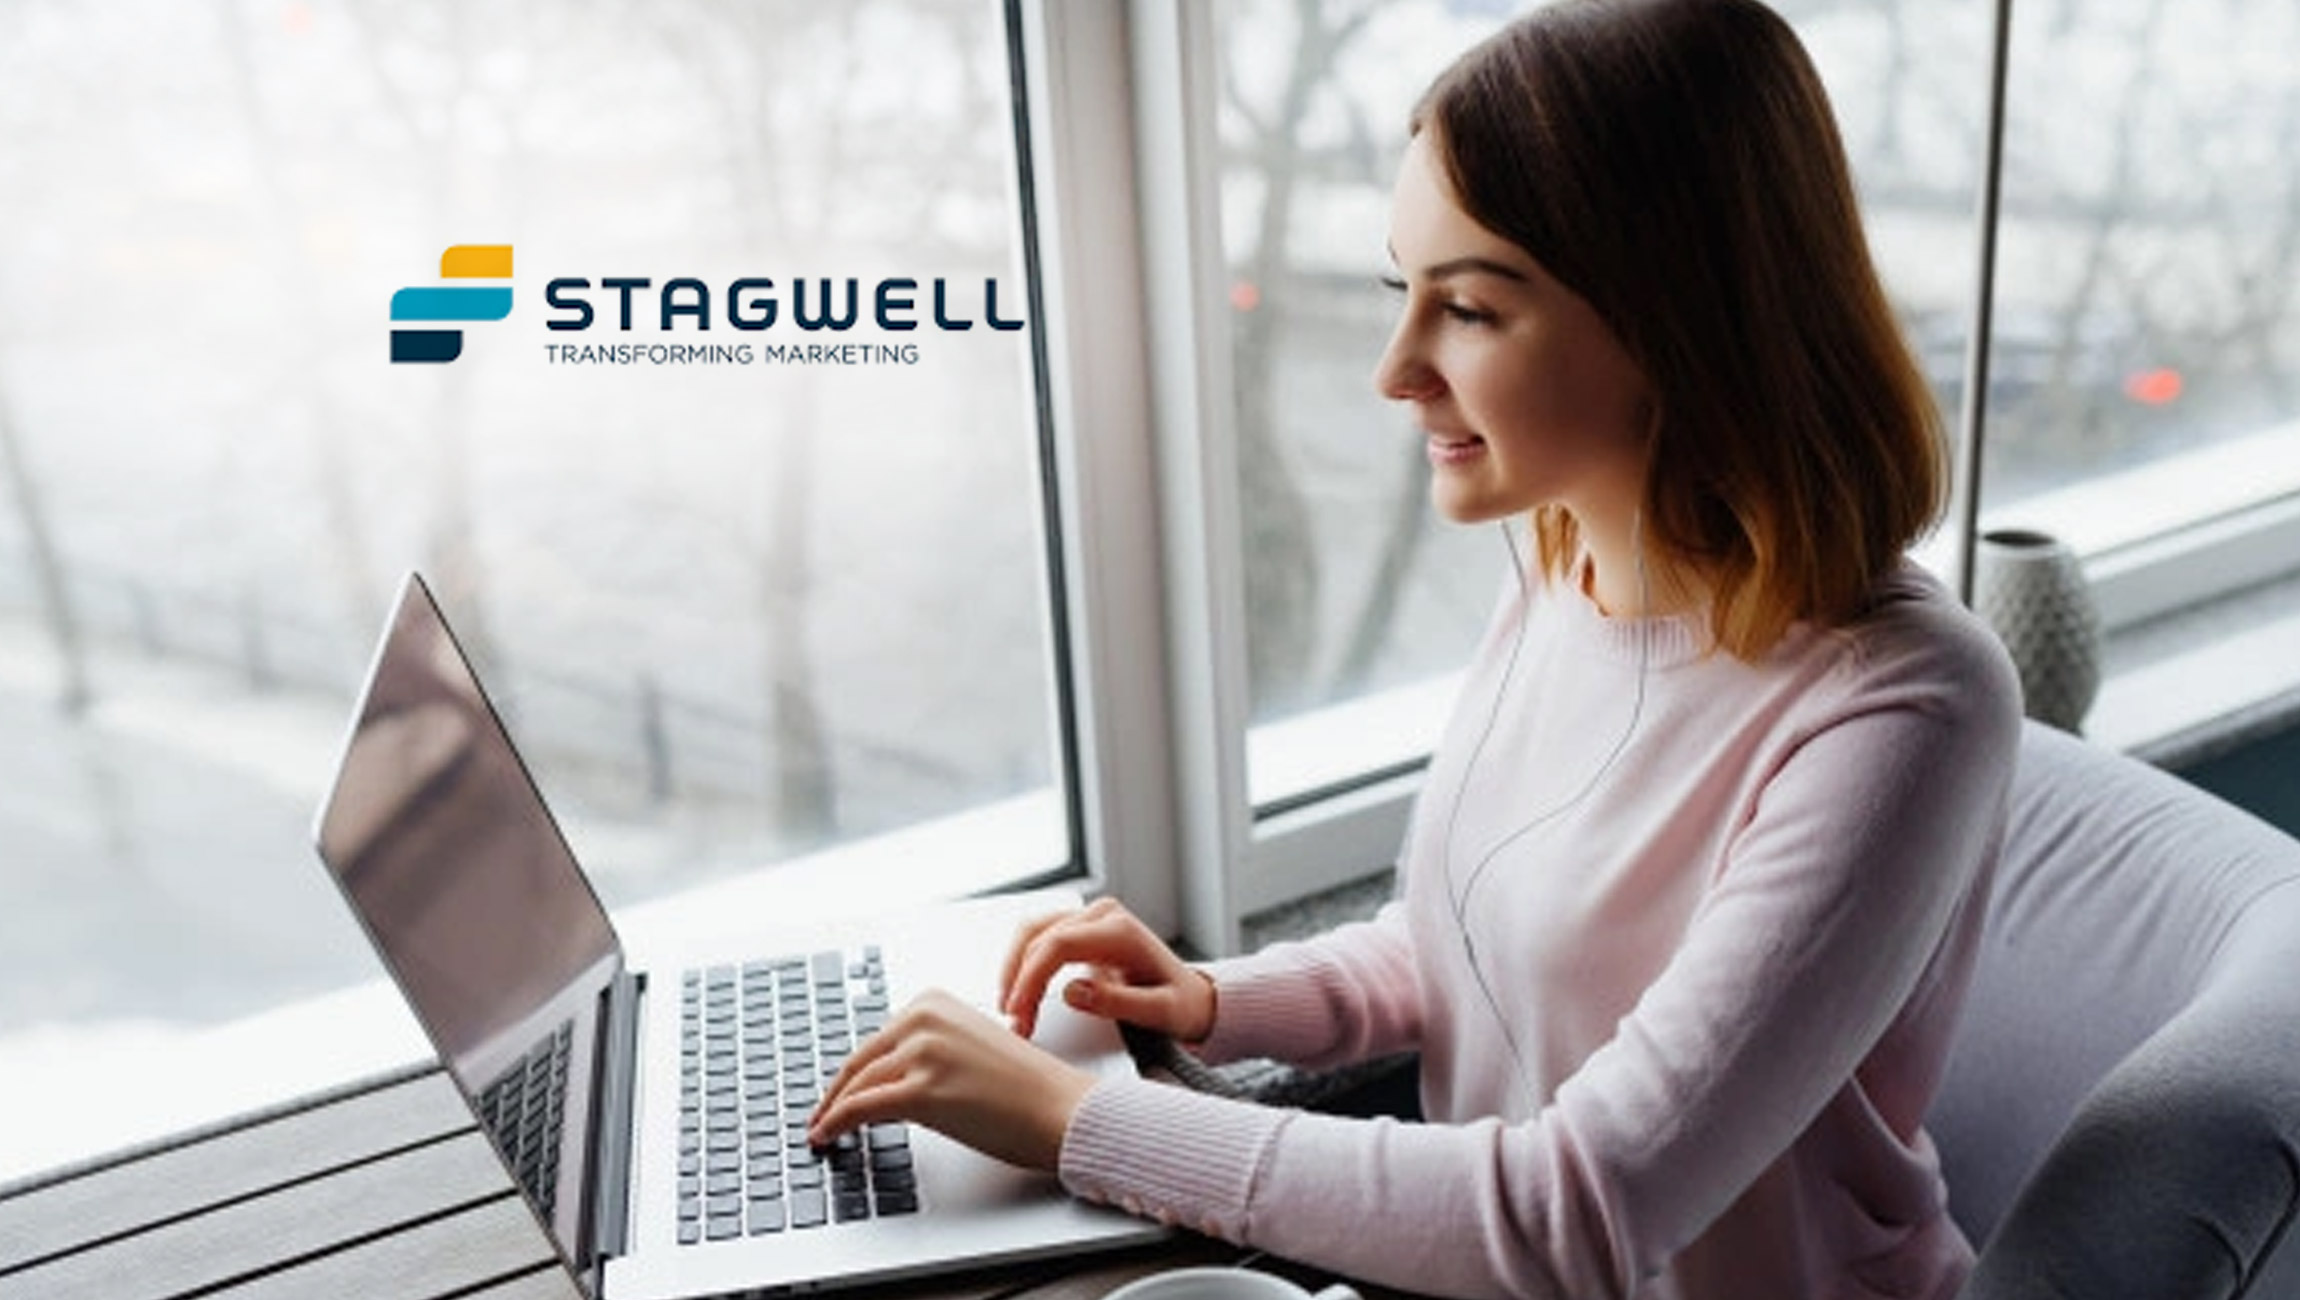 Stagwell (STGW) Appoints The Harris Poll's Merrill Raman as Chief Technology Officer